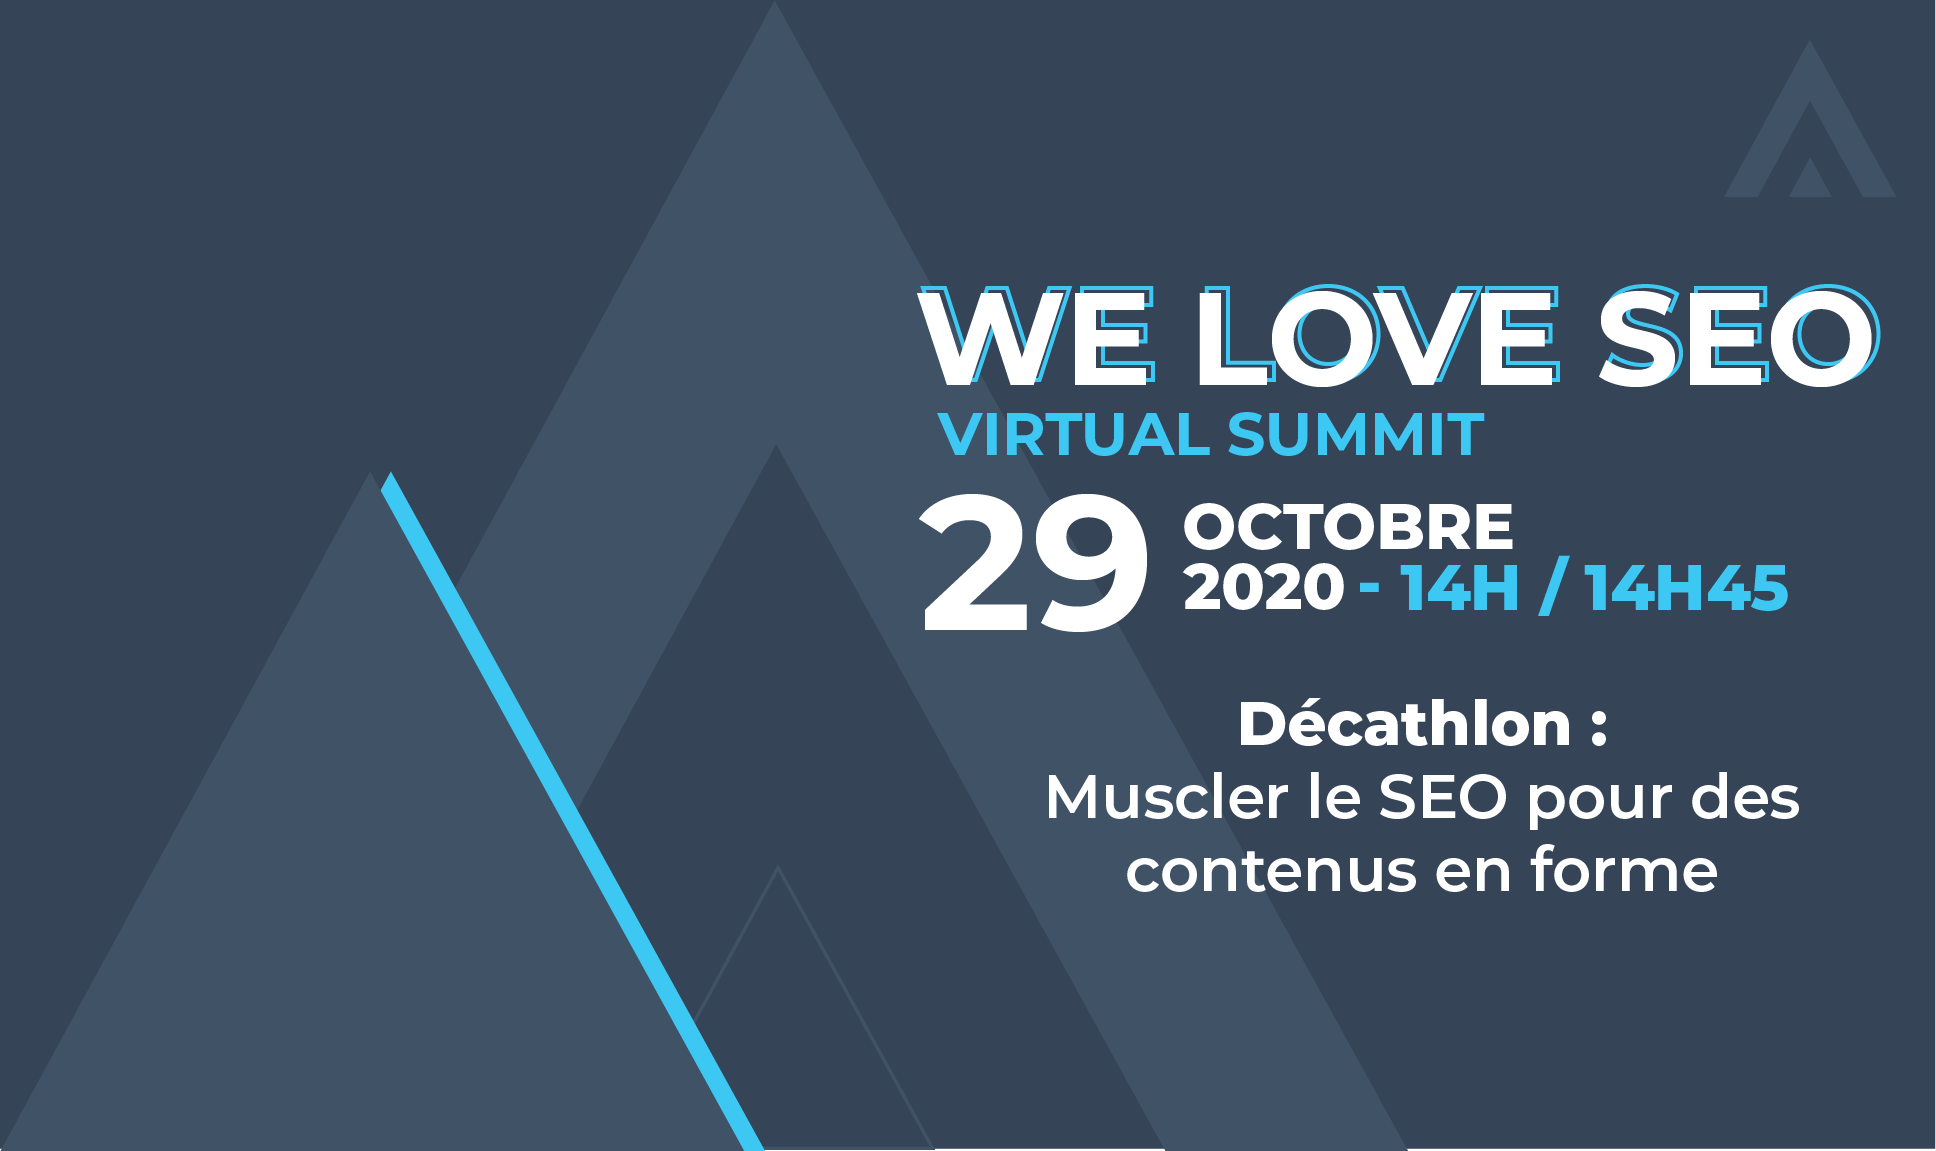 We Love SEO 2020 VIRTUAL SUMMIT : notre conférence Content Marketing /SEO